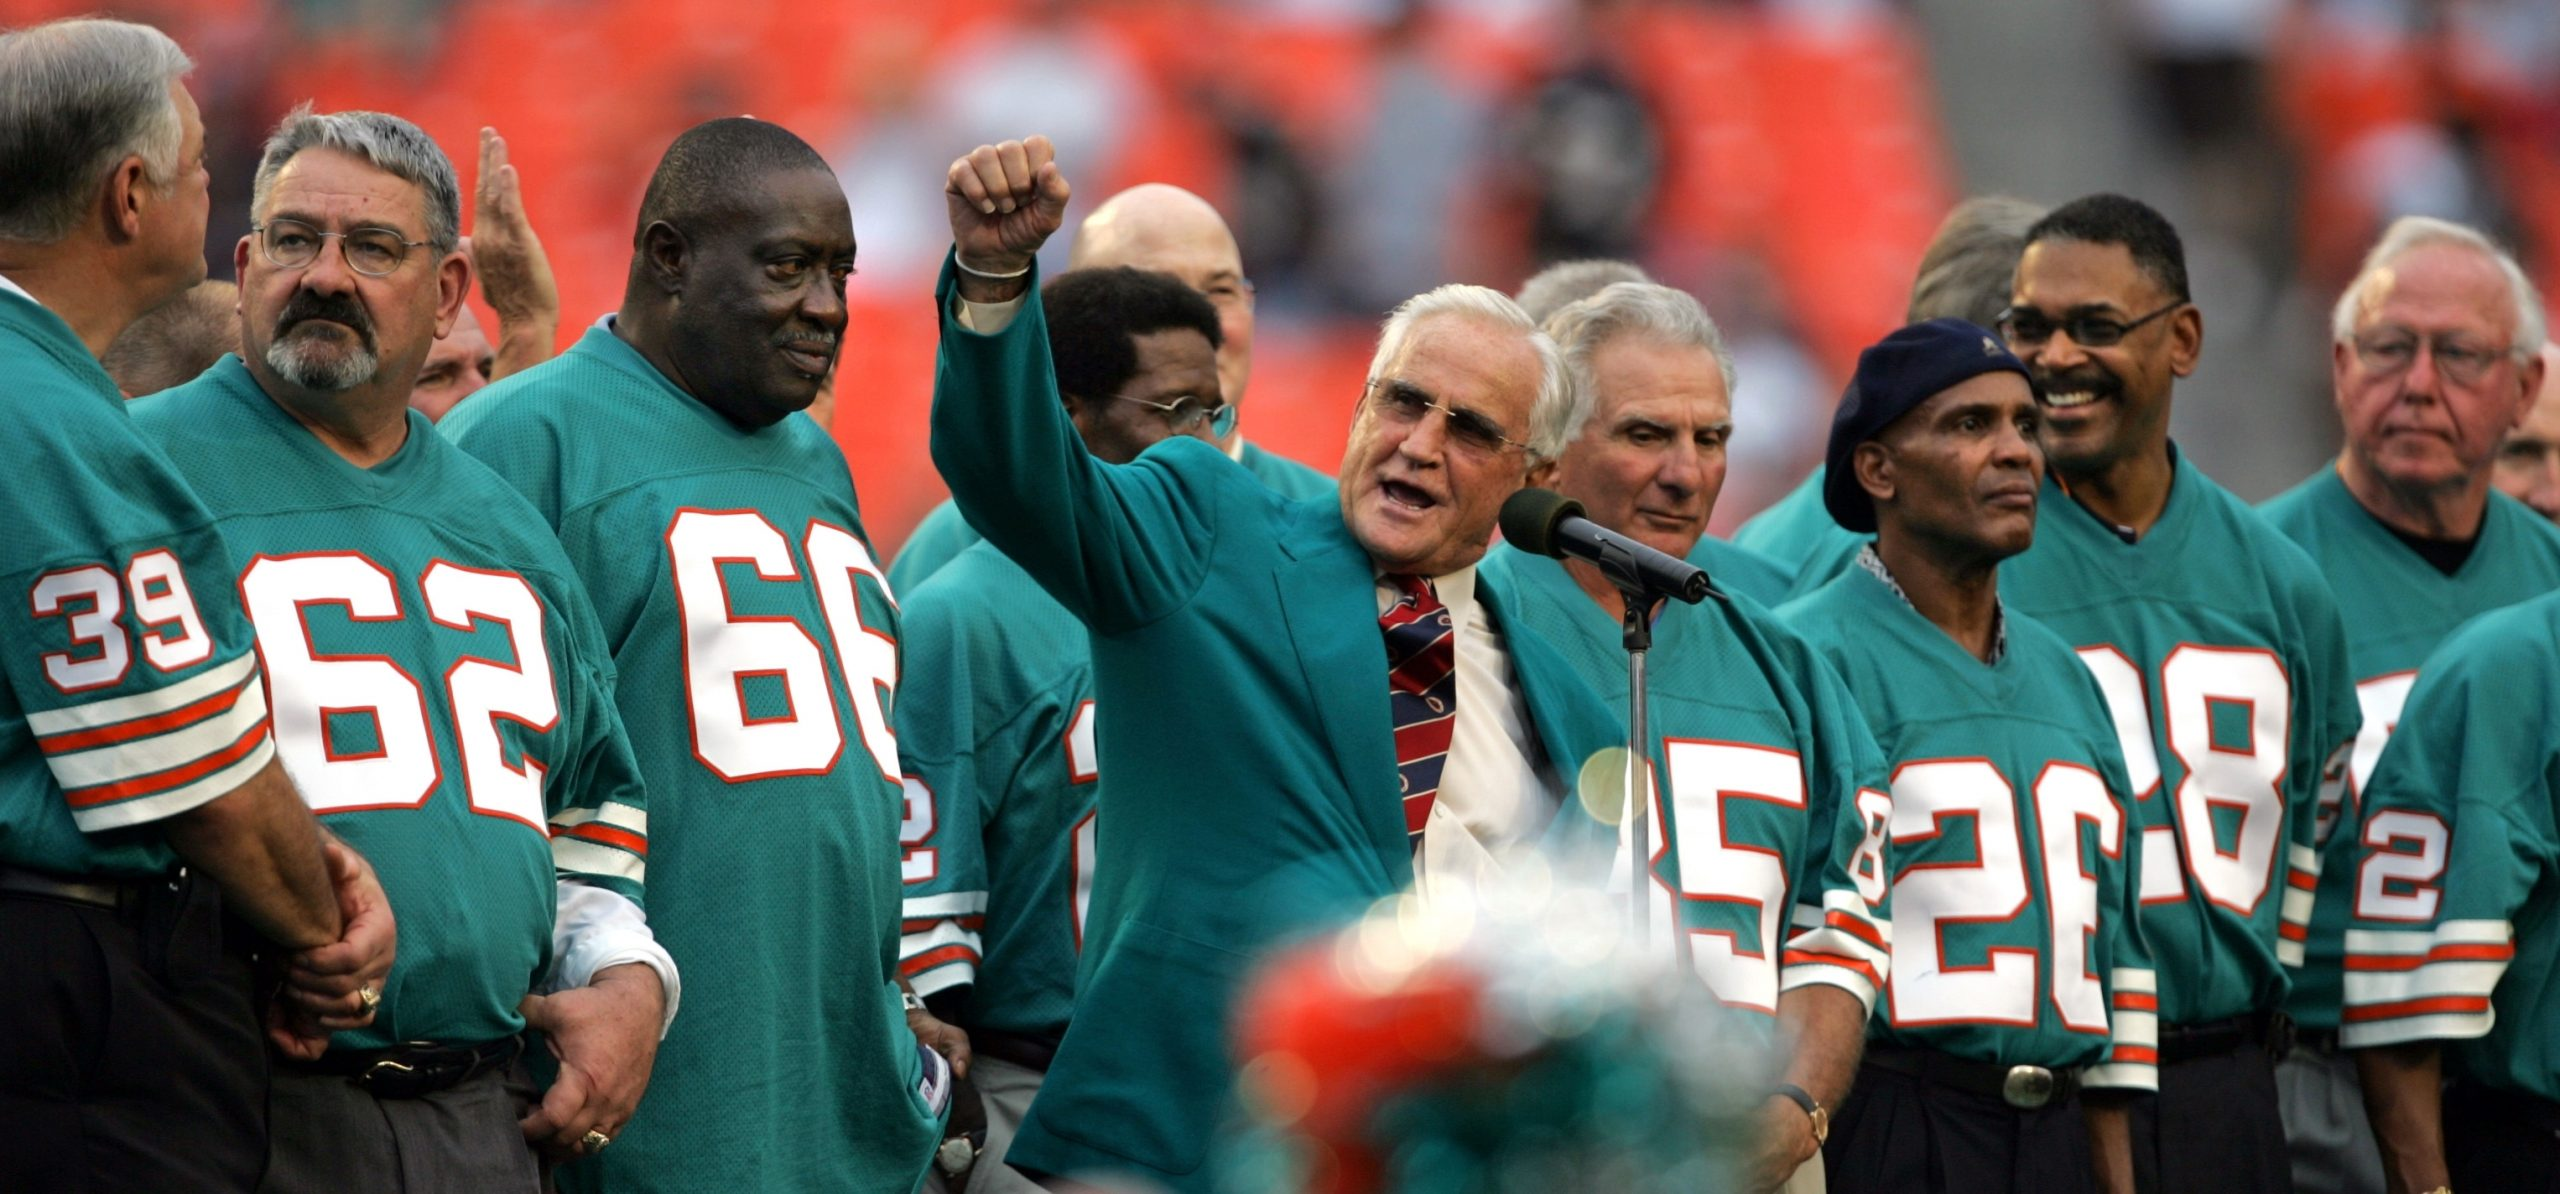 Special Report On Cte: 'worst May Be Yet To Come' For Nfl throughout Miami Dolphins 1972 Super Bowl Quarterback